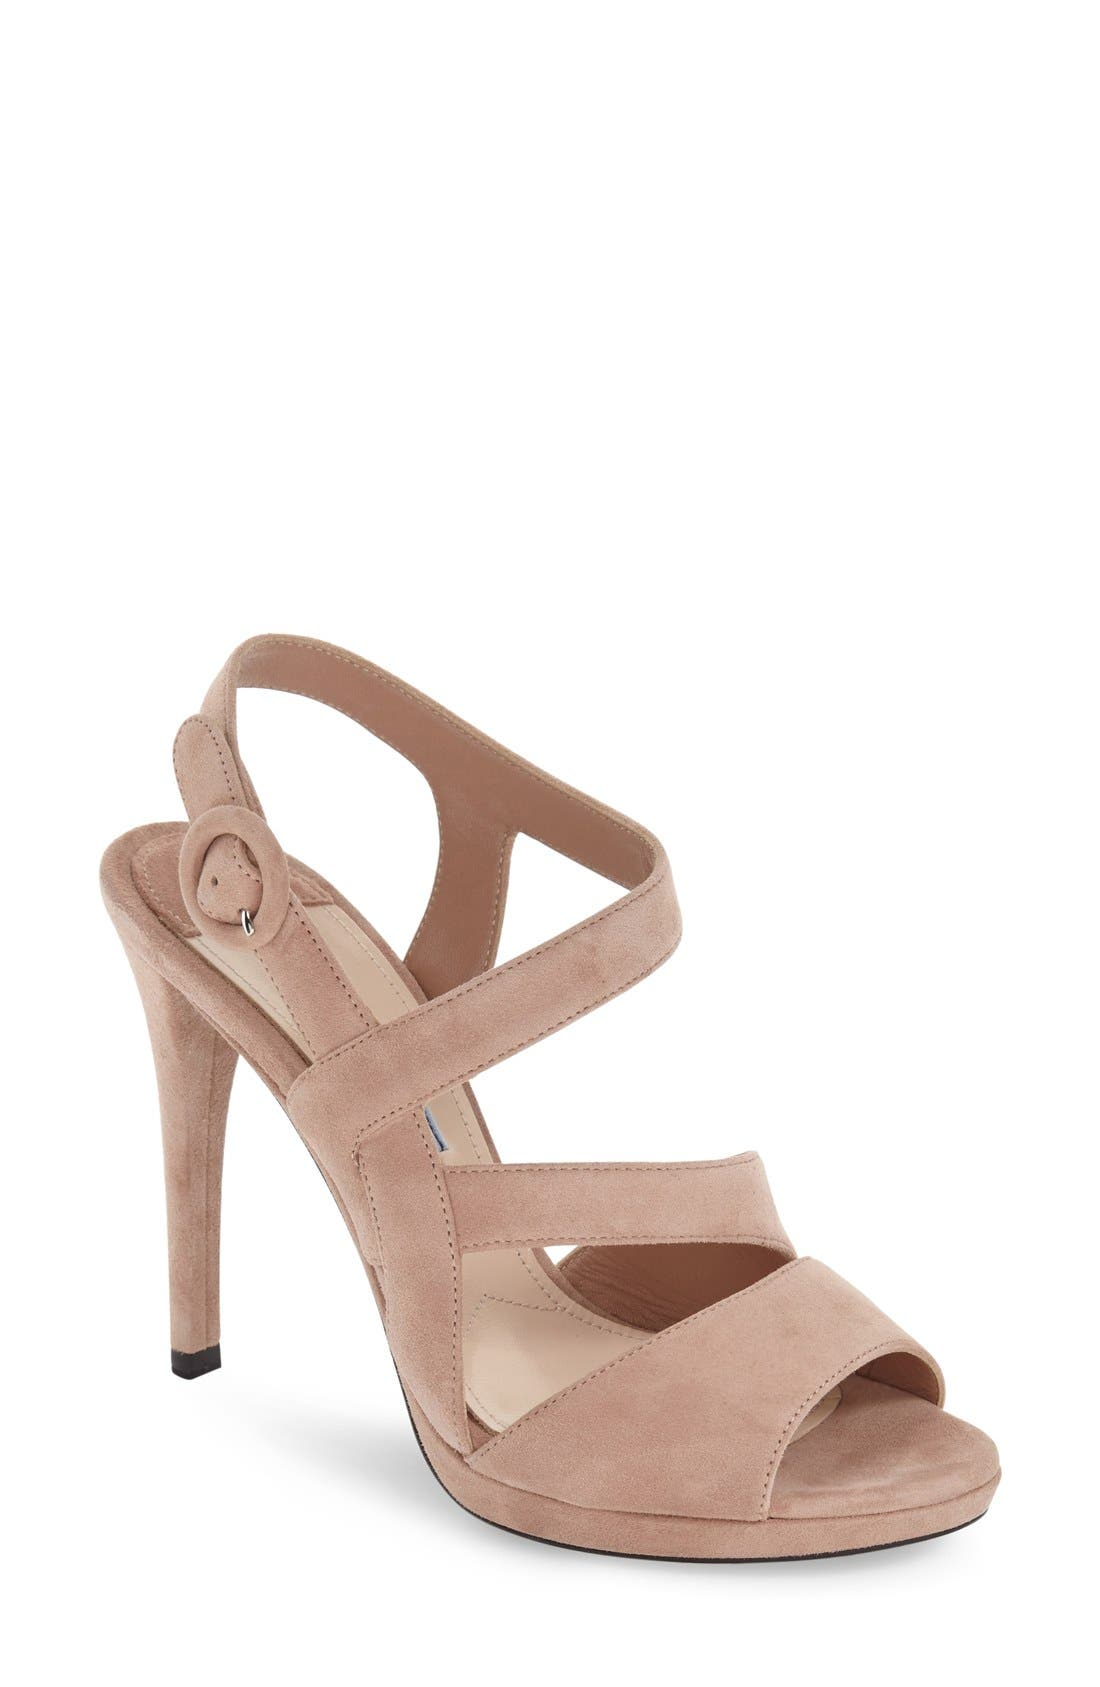 Alternate Image 1 Selected - Prada Strappy Sandal (Women)